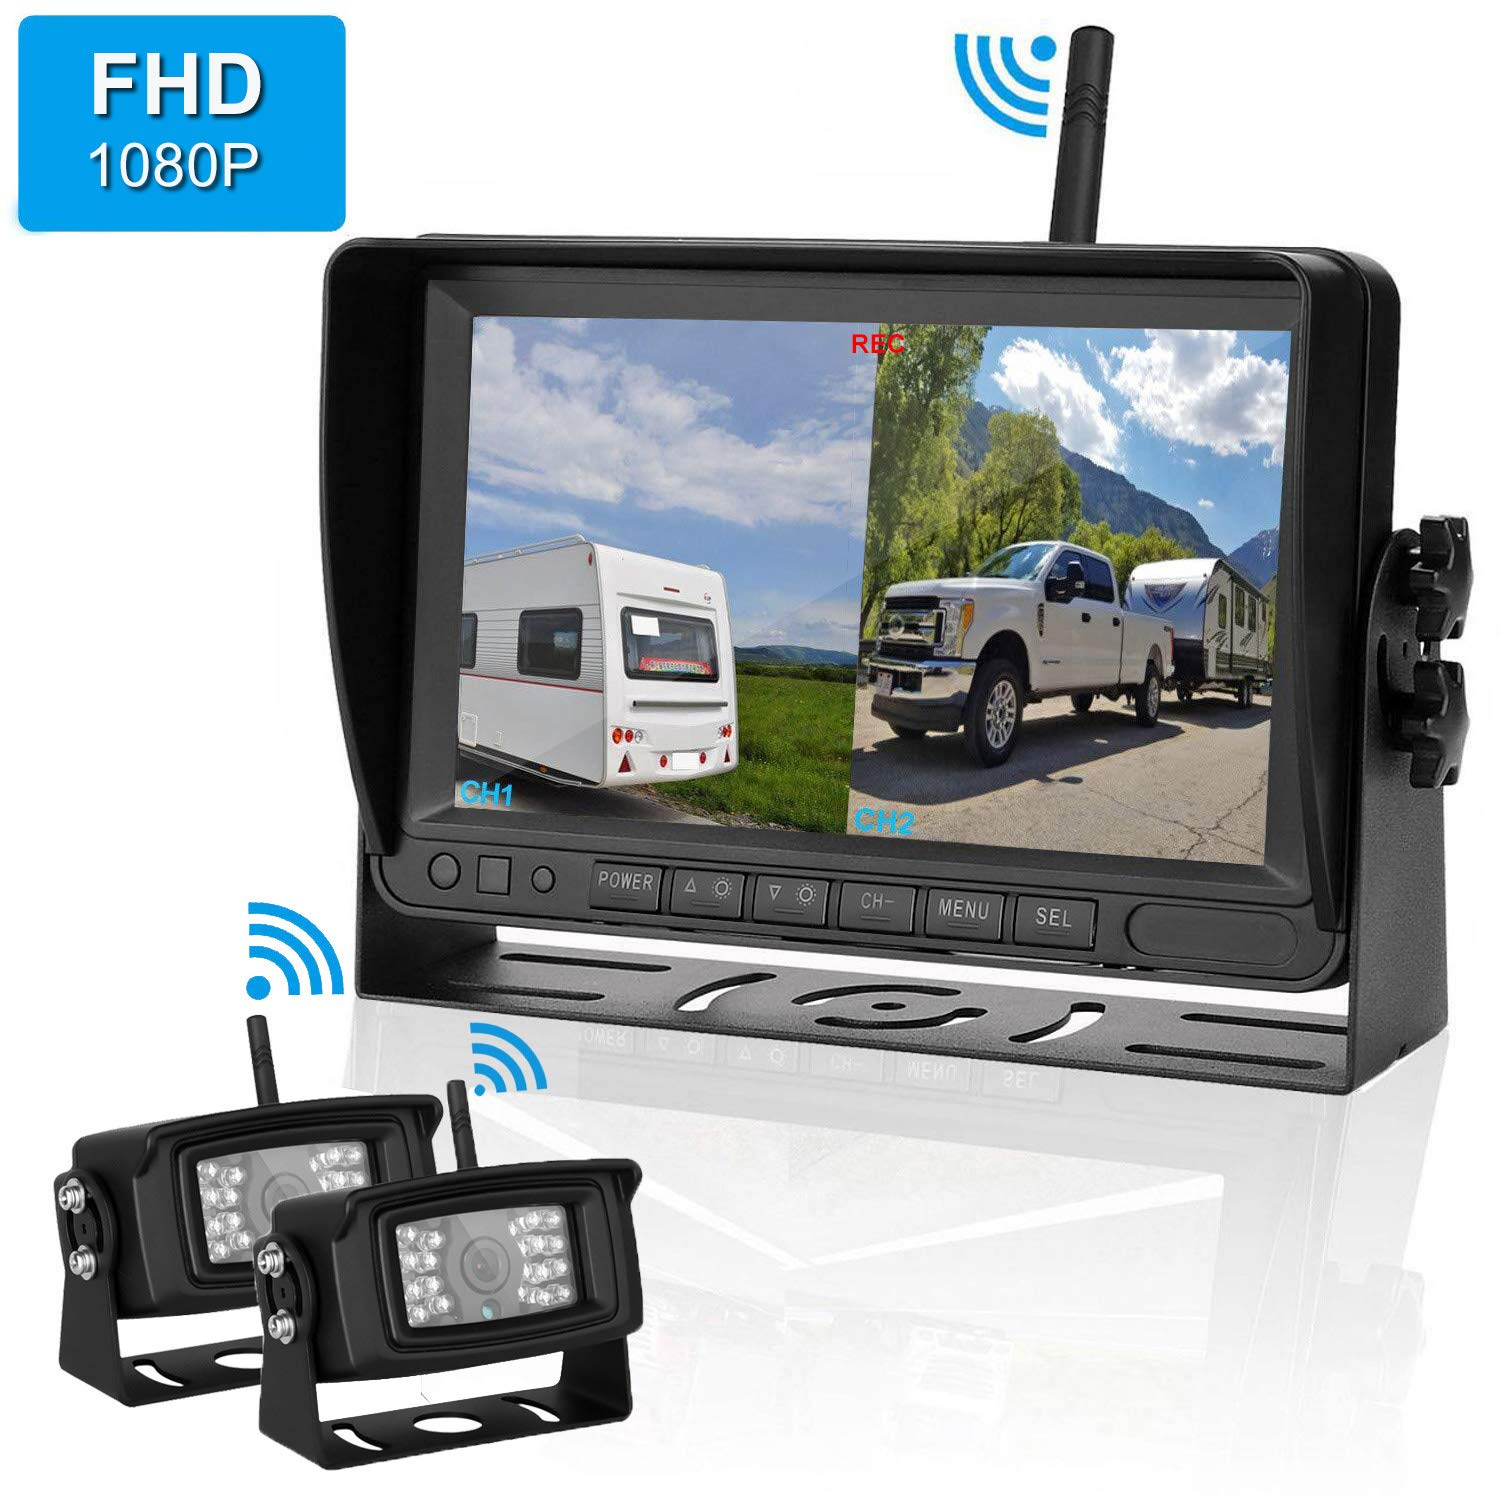 FHD 1080P Digital Wireless 2 Backup Camera for RVs